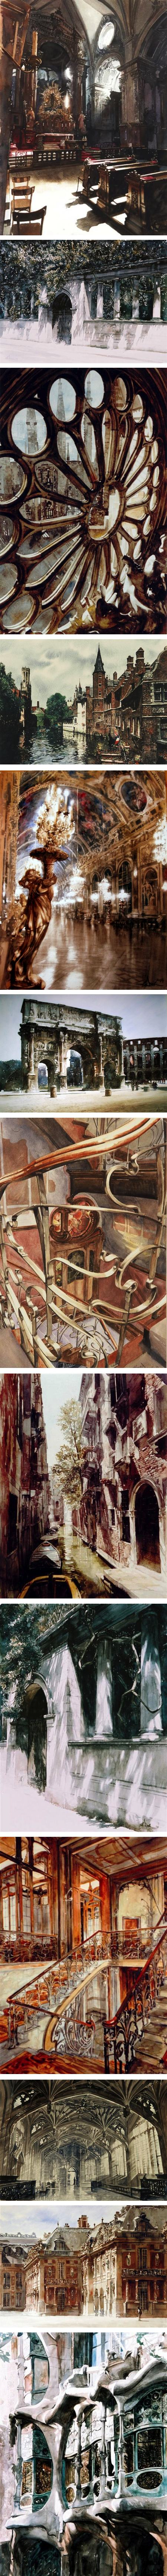 Paul Dmoch, watercolor cityscapes, landscapes, cathedral interiors